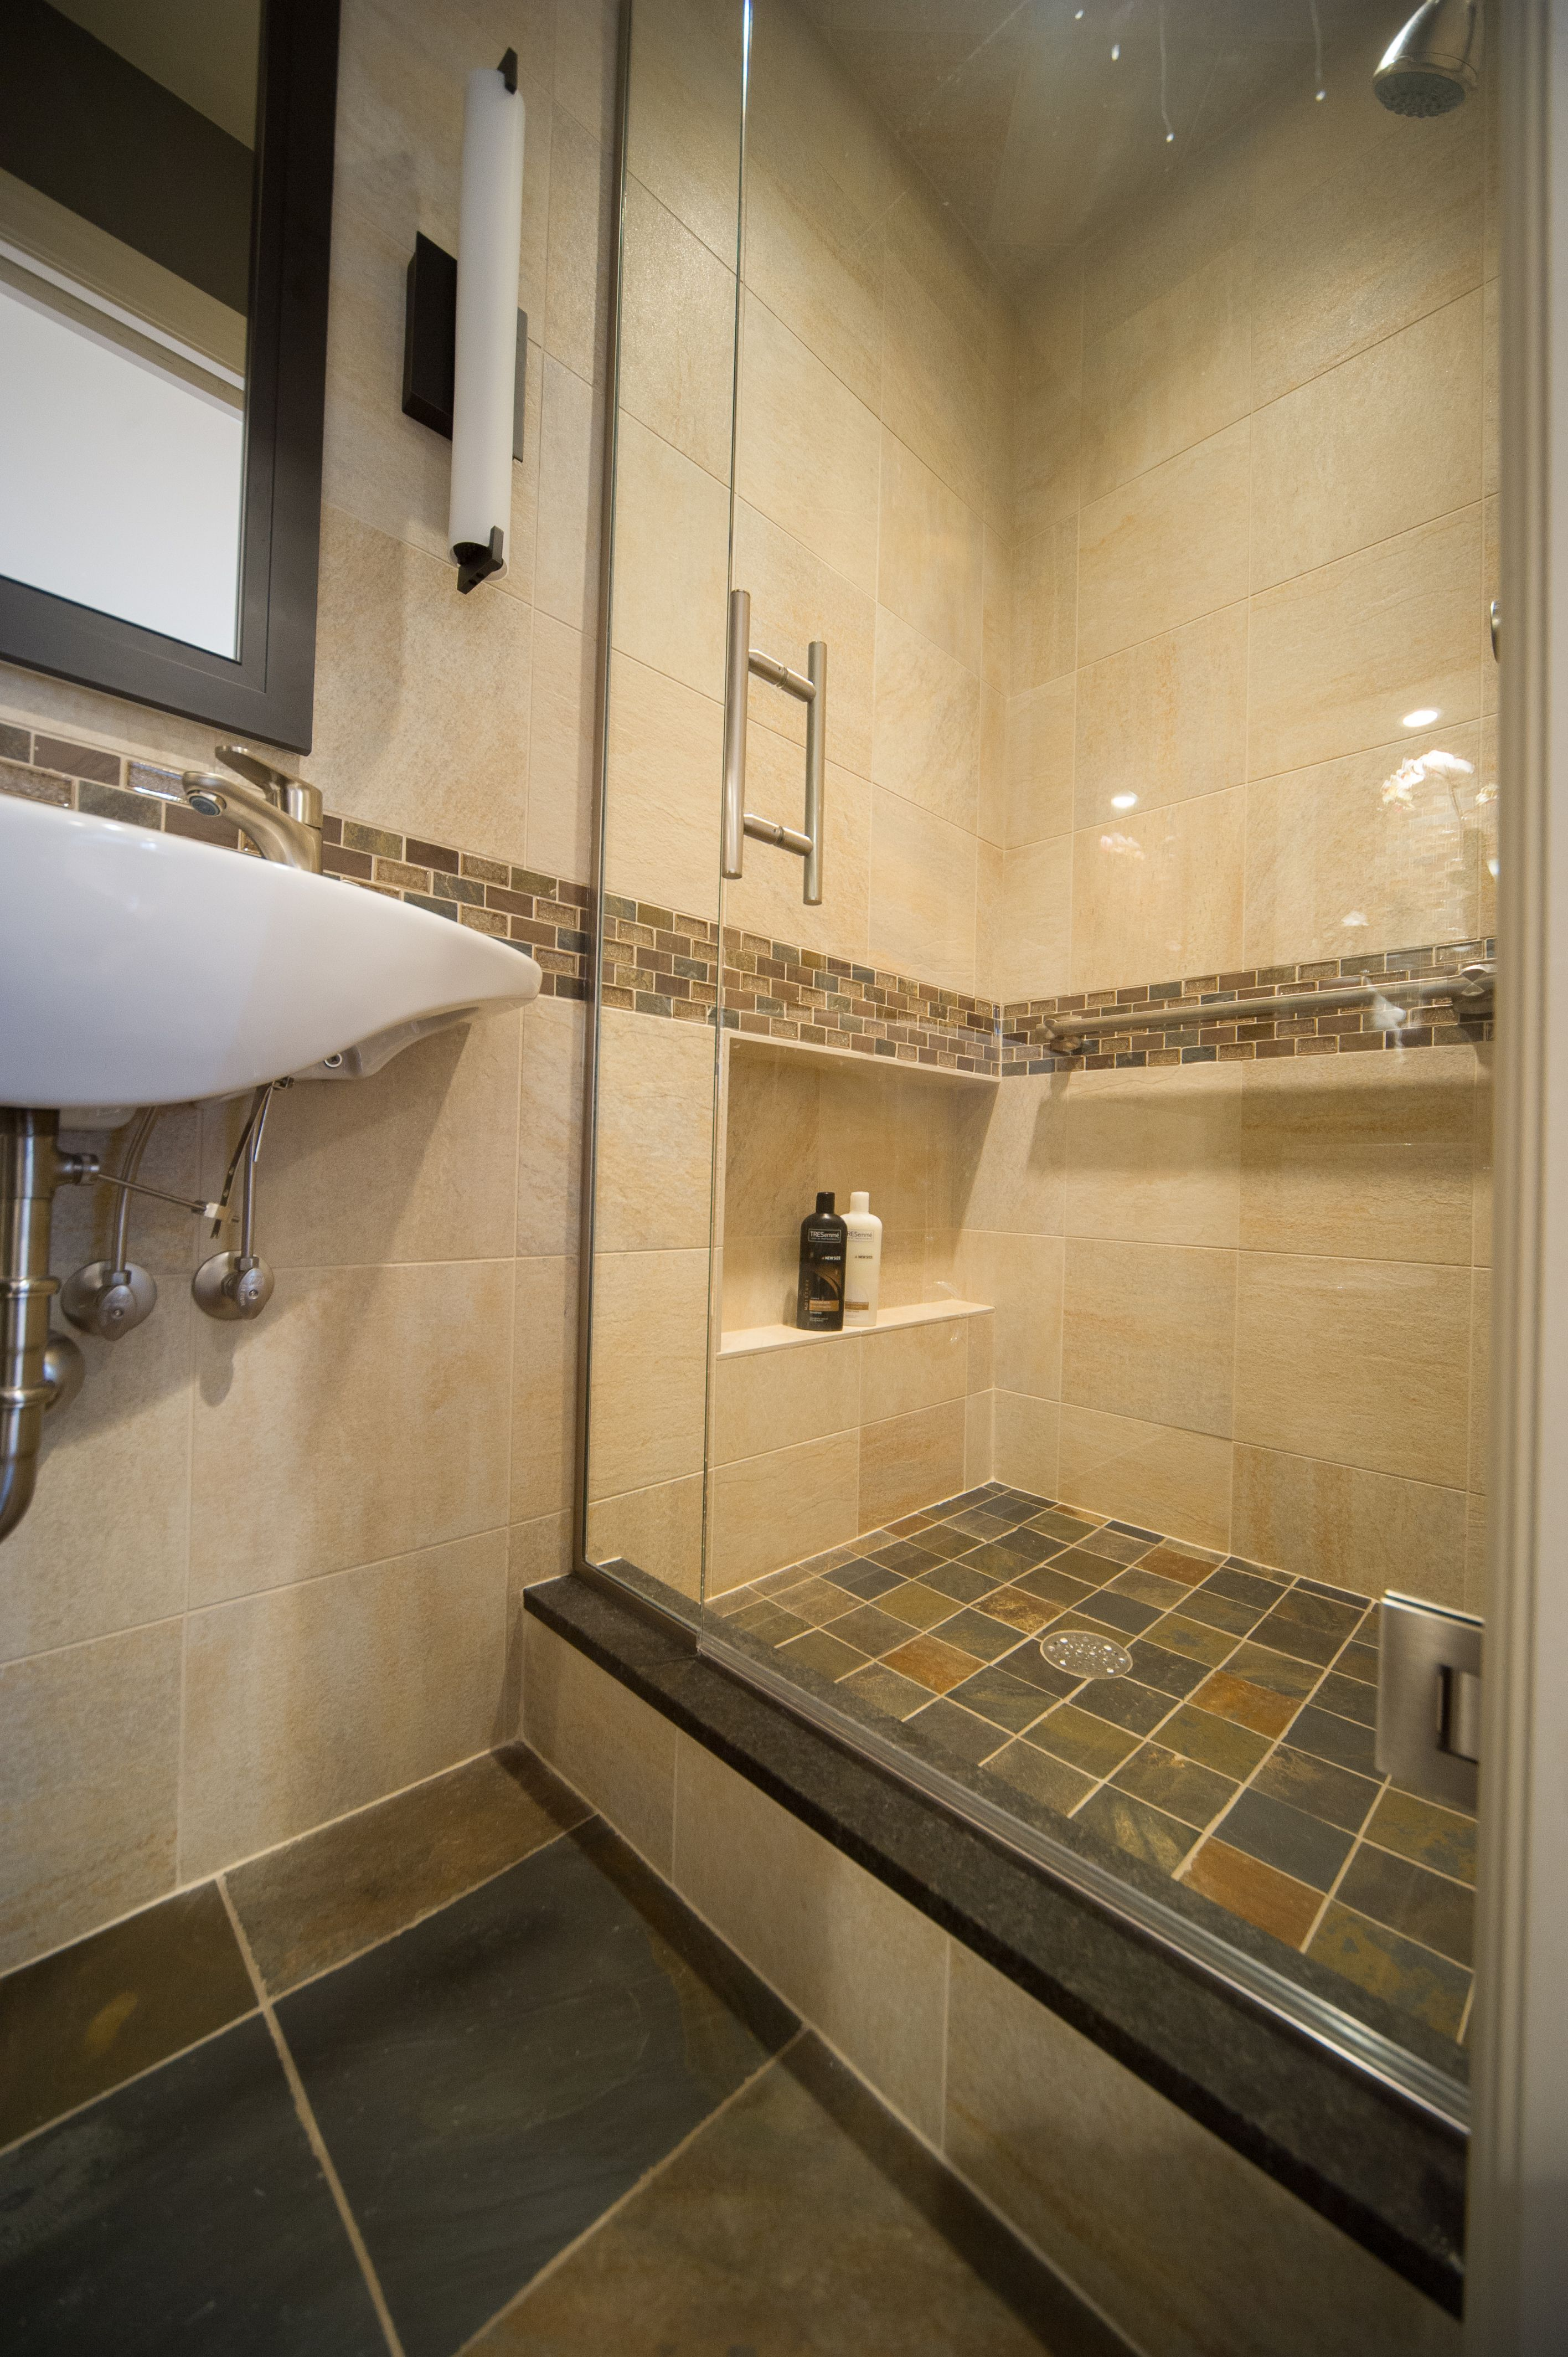 17 best images about small bathroom remodel ideas on pinterest - Bathroom Design Ideas For Small Bathrooms